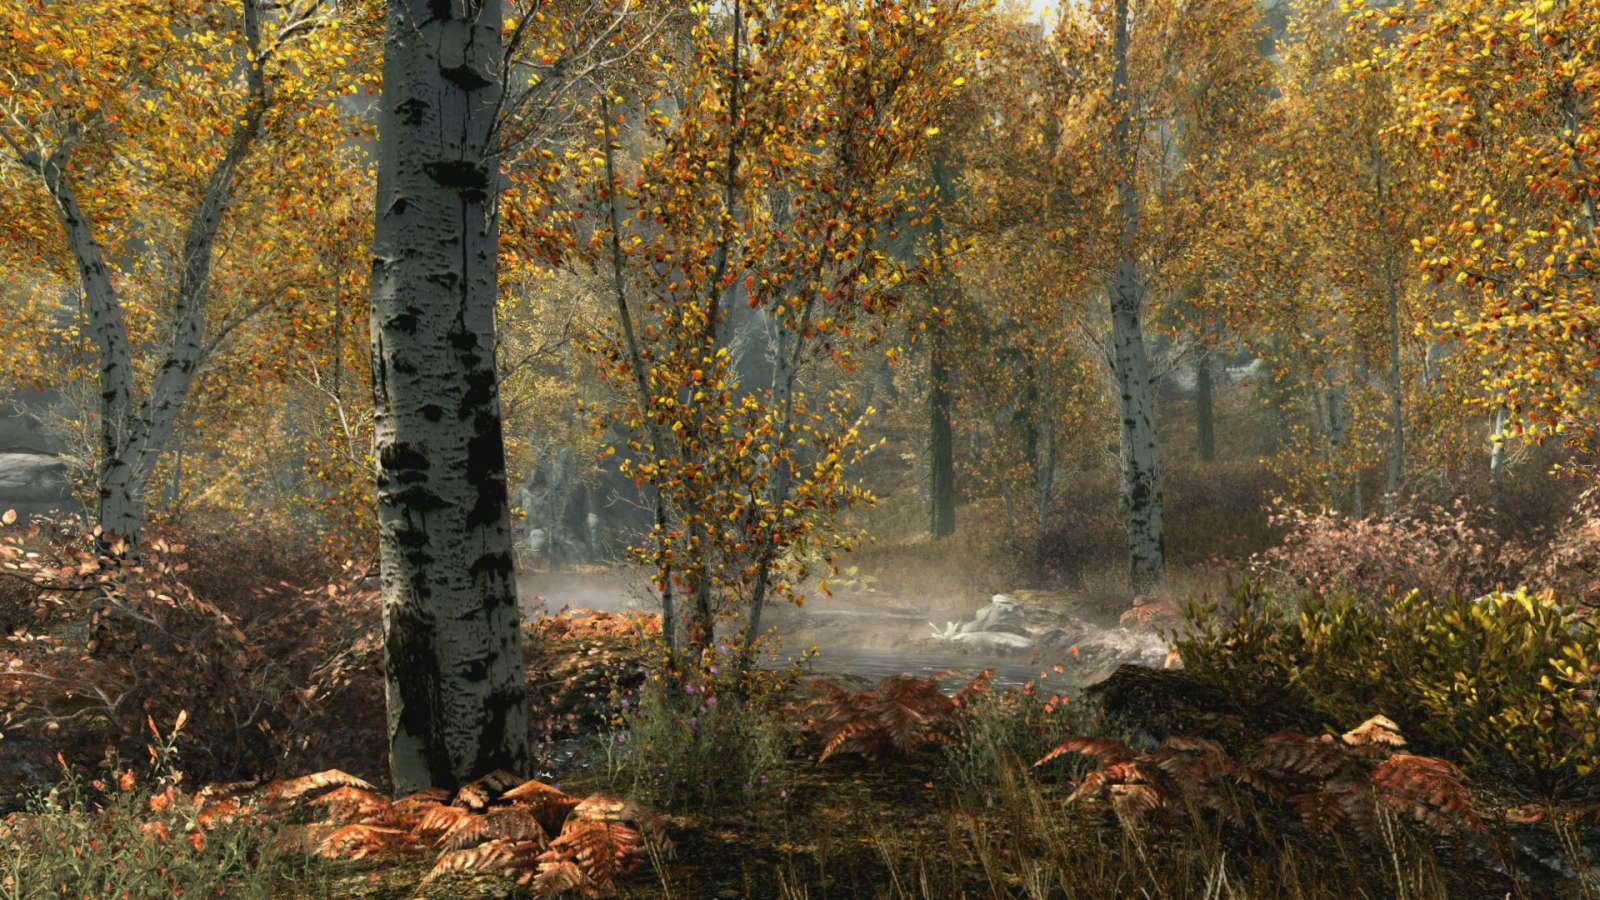 skyrimspecialeditionfallforest_1465779409